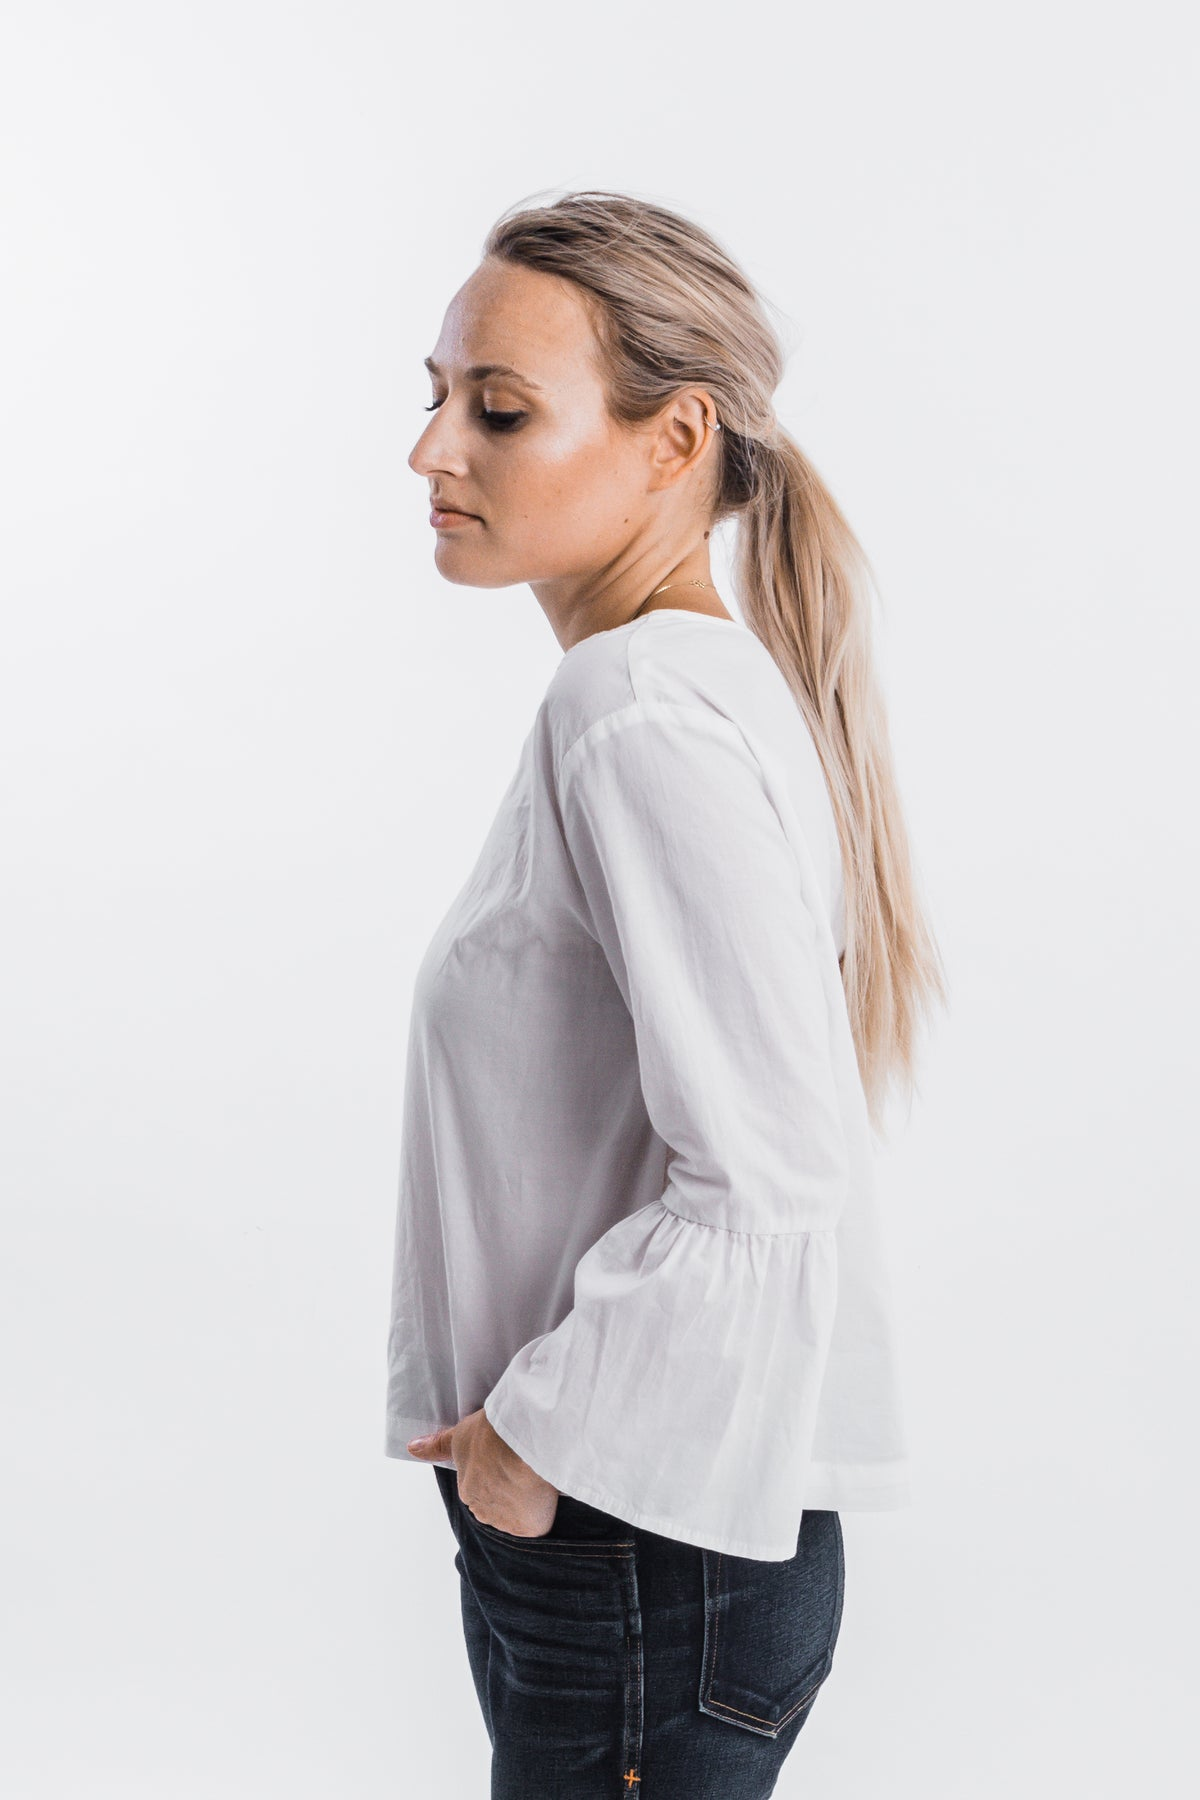 It Is Well L.A. - Bell Sleeve Blouse - White | Joon + Co. Women's Tops